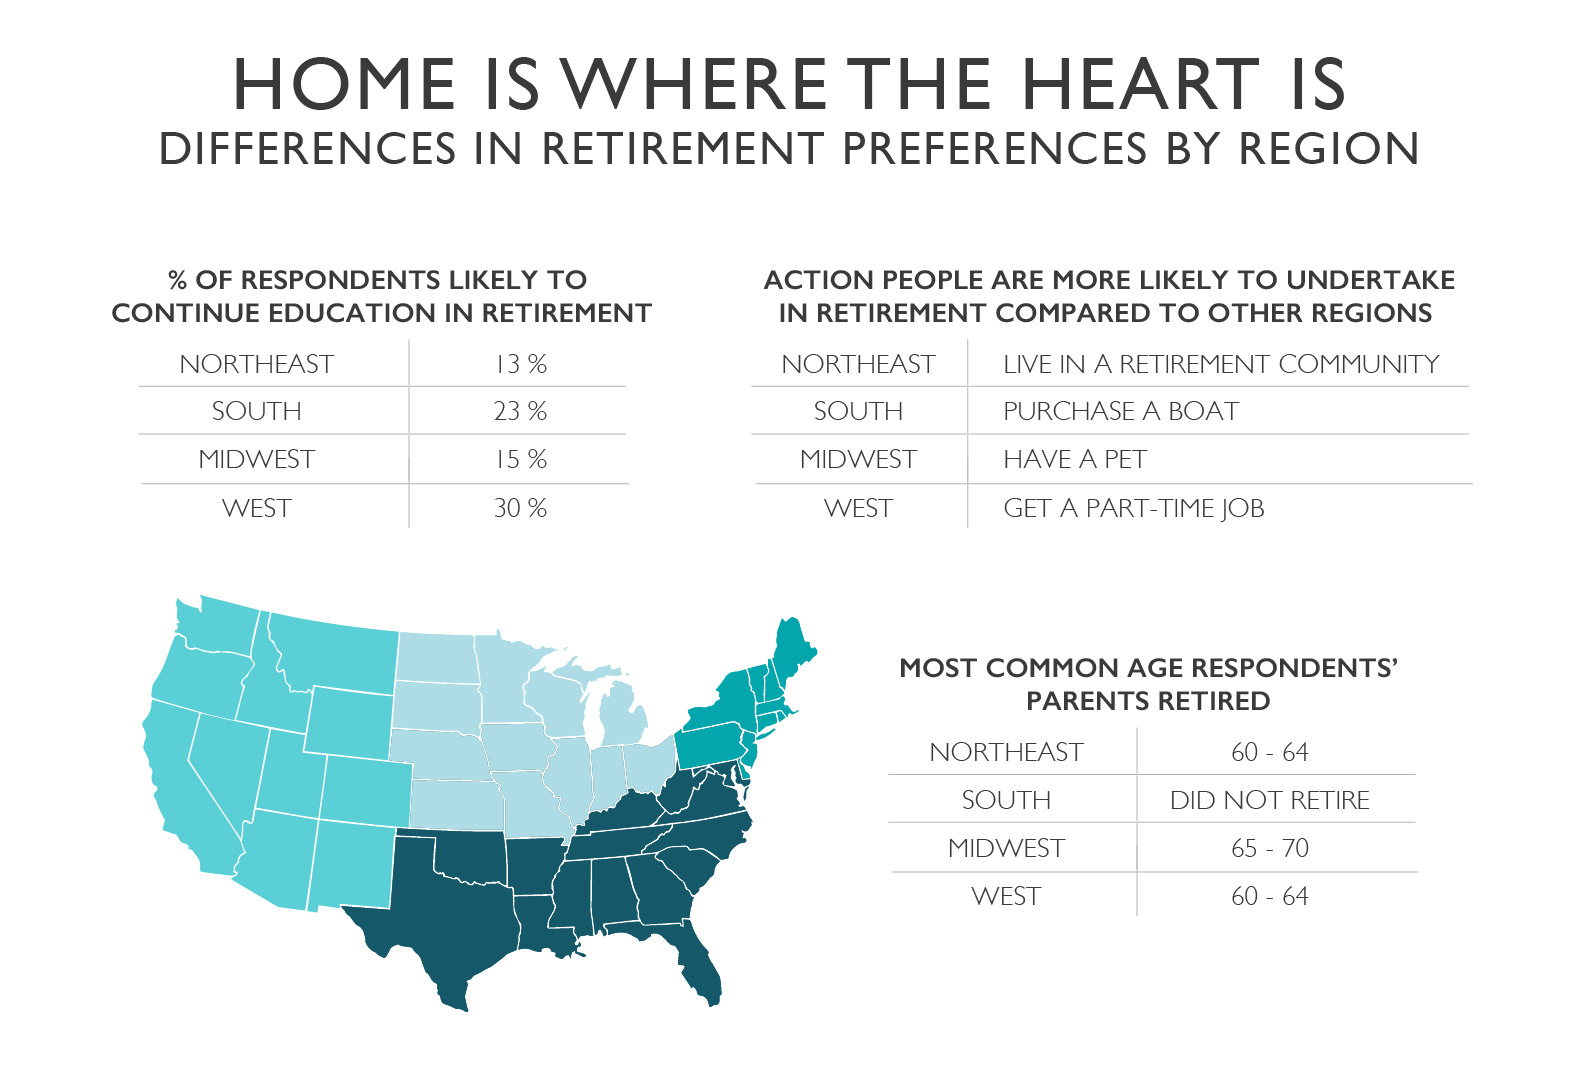 The differences in retirement preferences by region